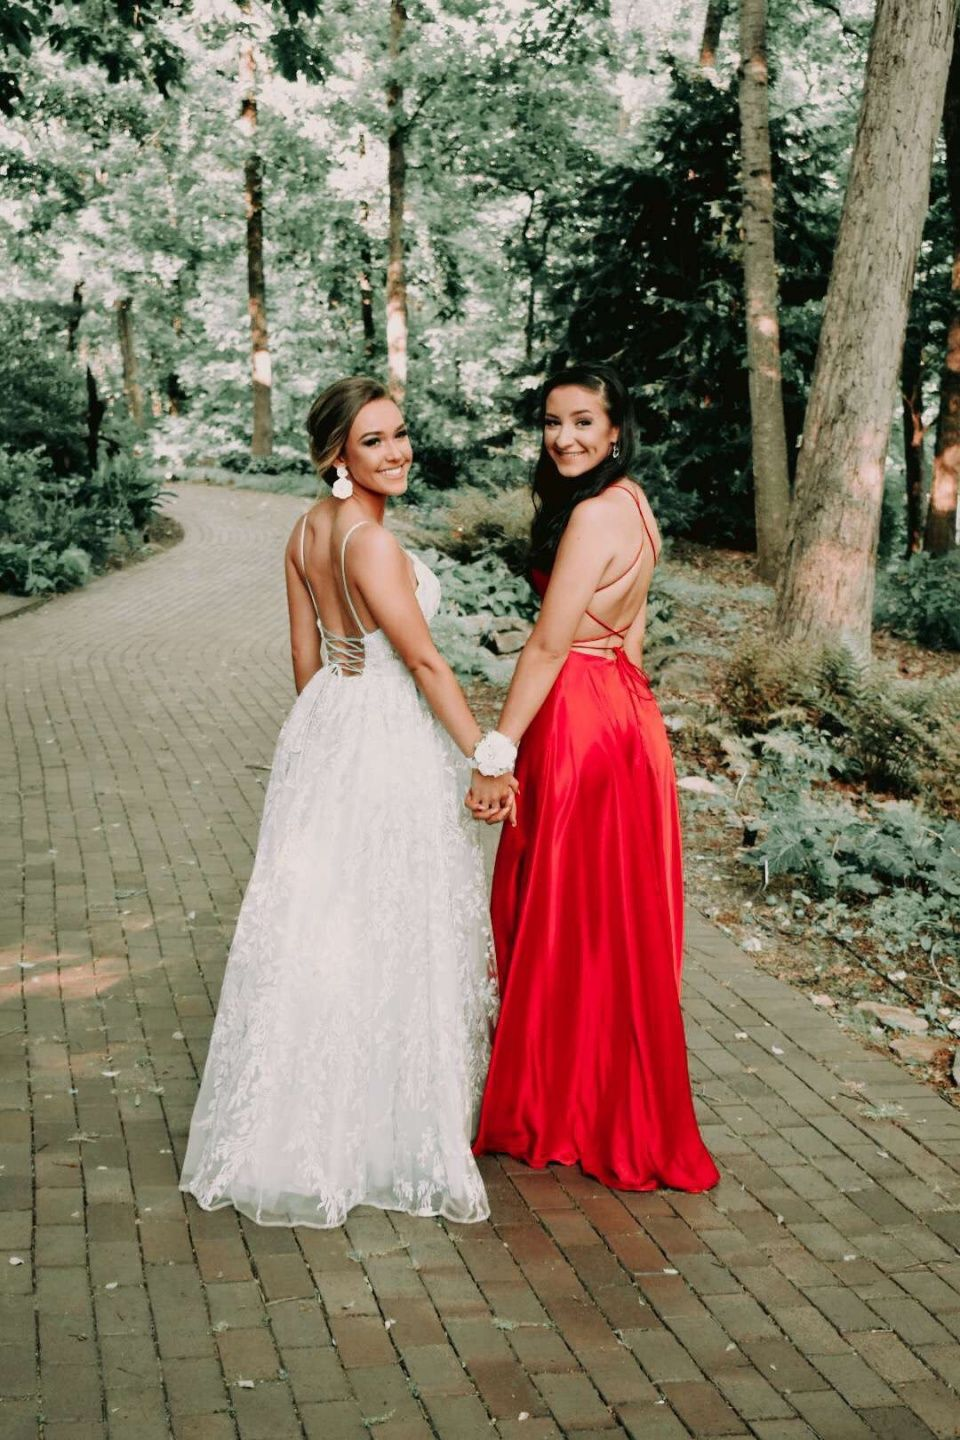 Images Marygracecromer Vsco Prom Picture Poses Prom Photoshoot Prom Photos [ 1440 x 960 Pixel ]